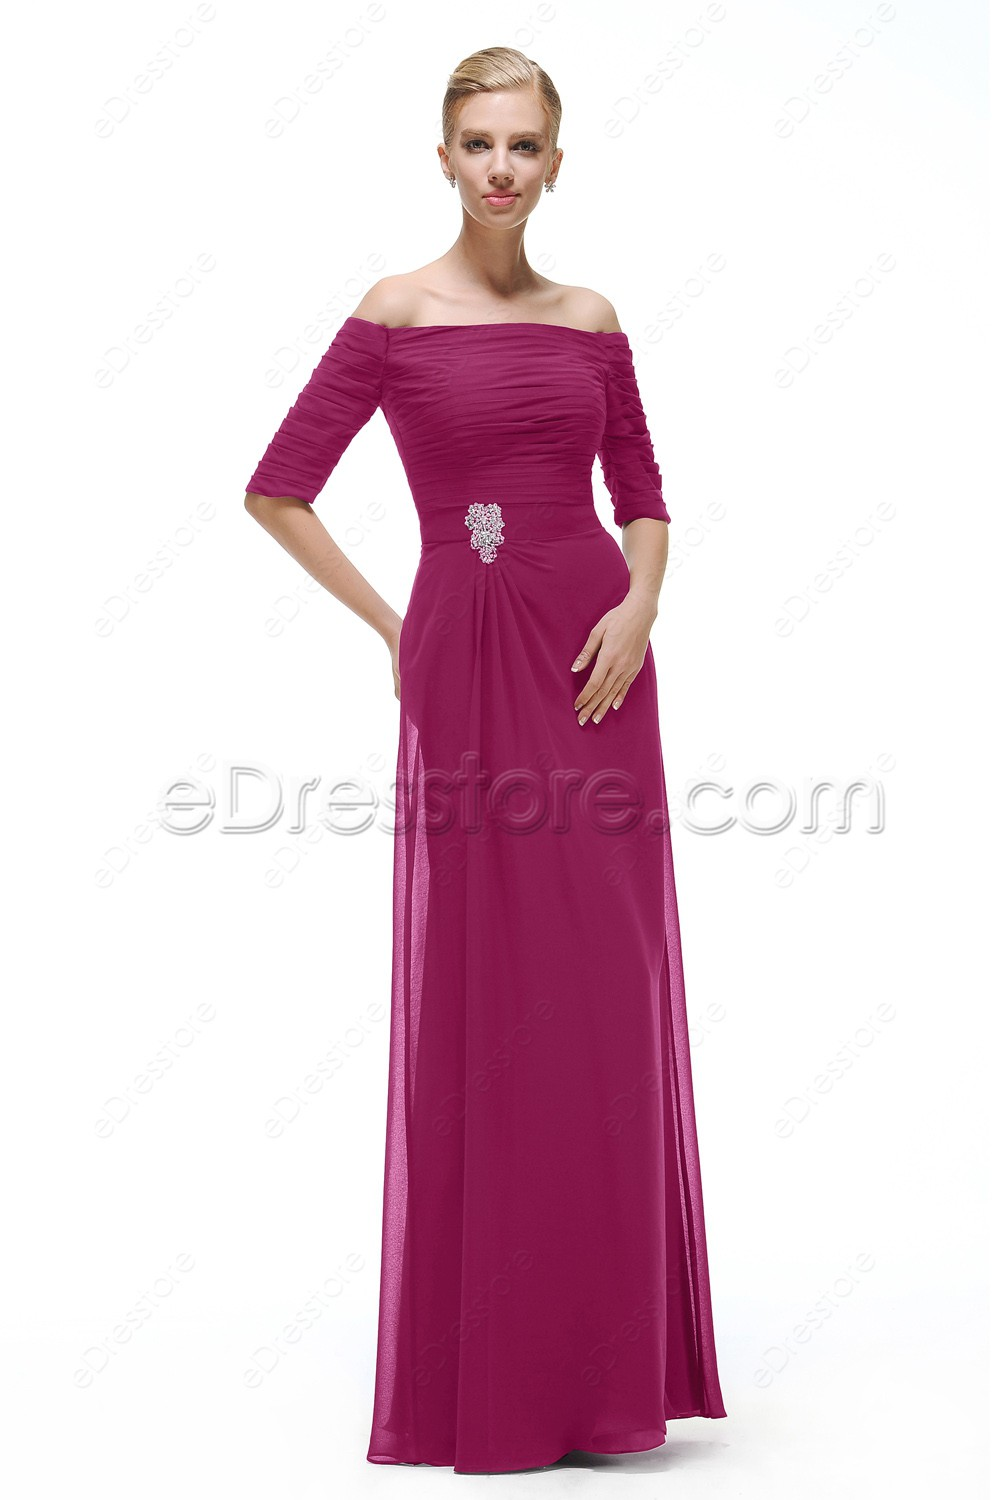 Magenta maid of honor dresses bridesmaid dress with sleeves for Maid of honor wedding dresses